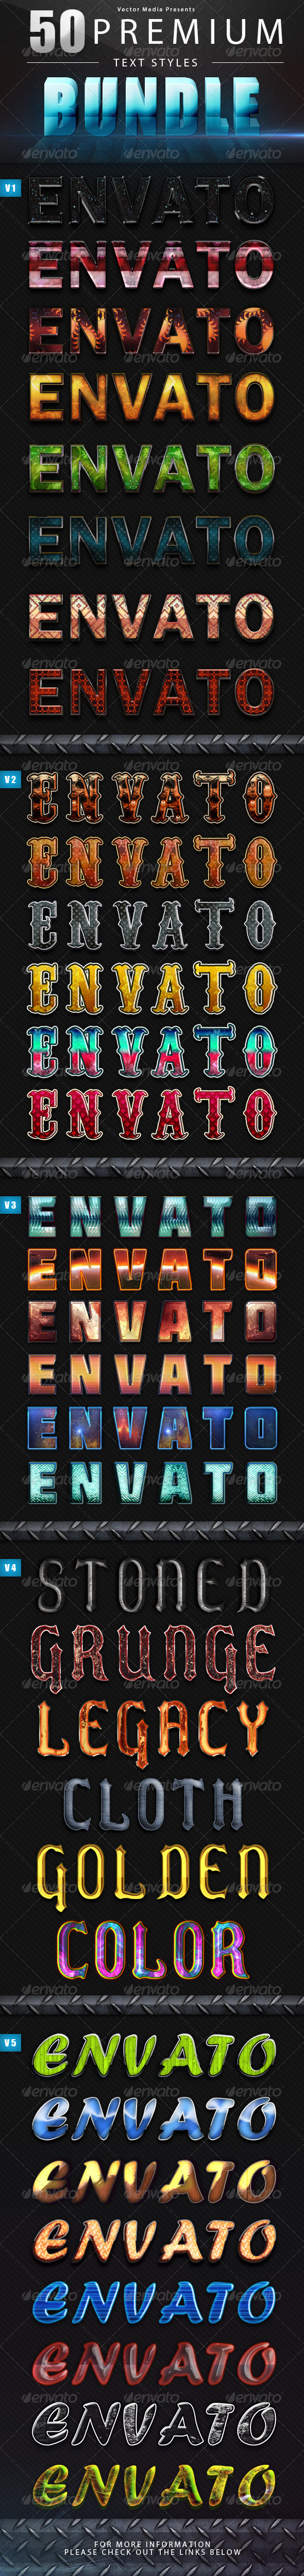 GraphicRiver Premium Text Styles Bundle 4848787